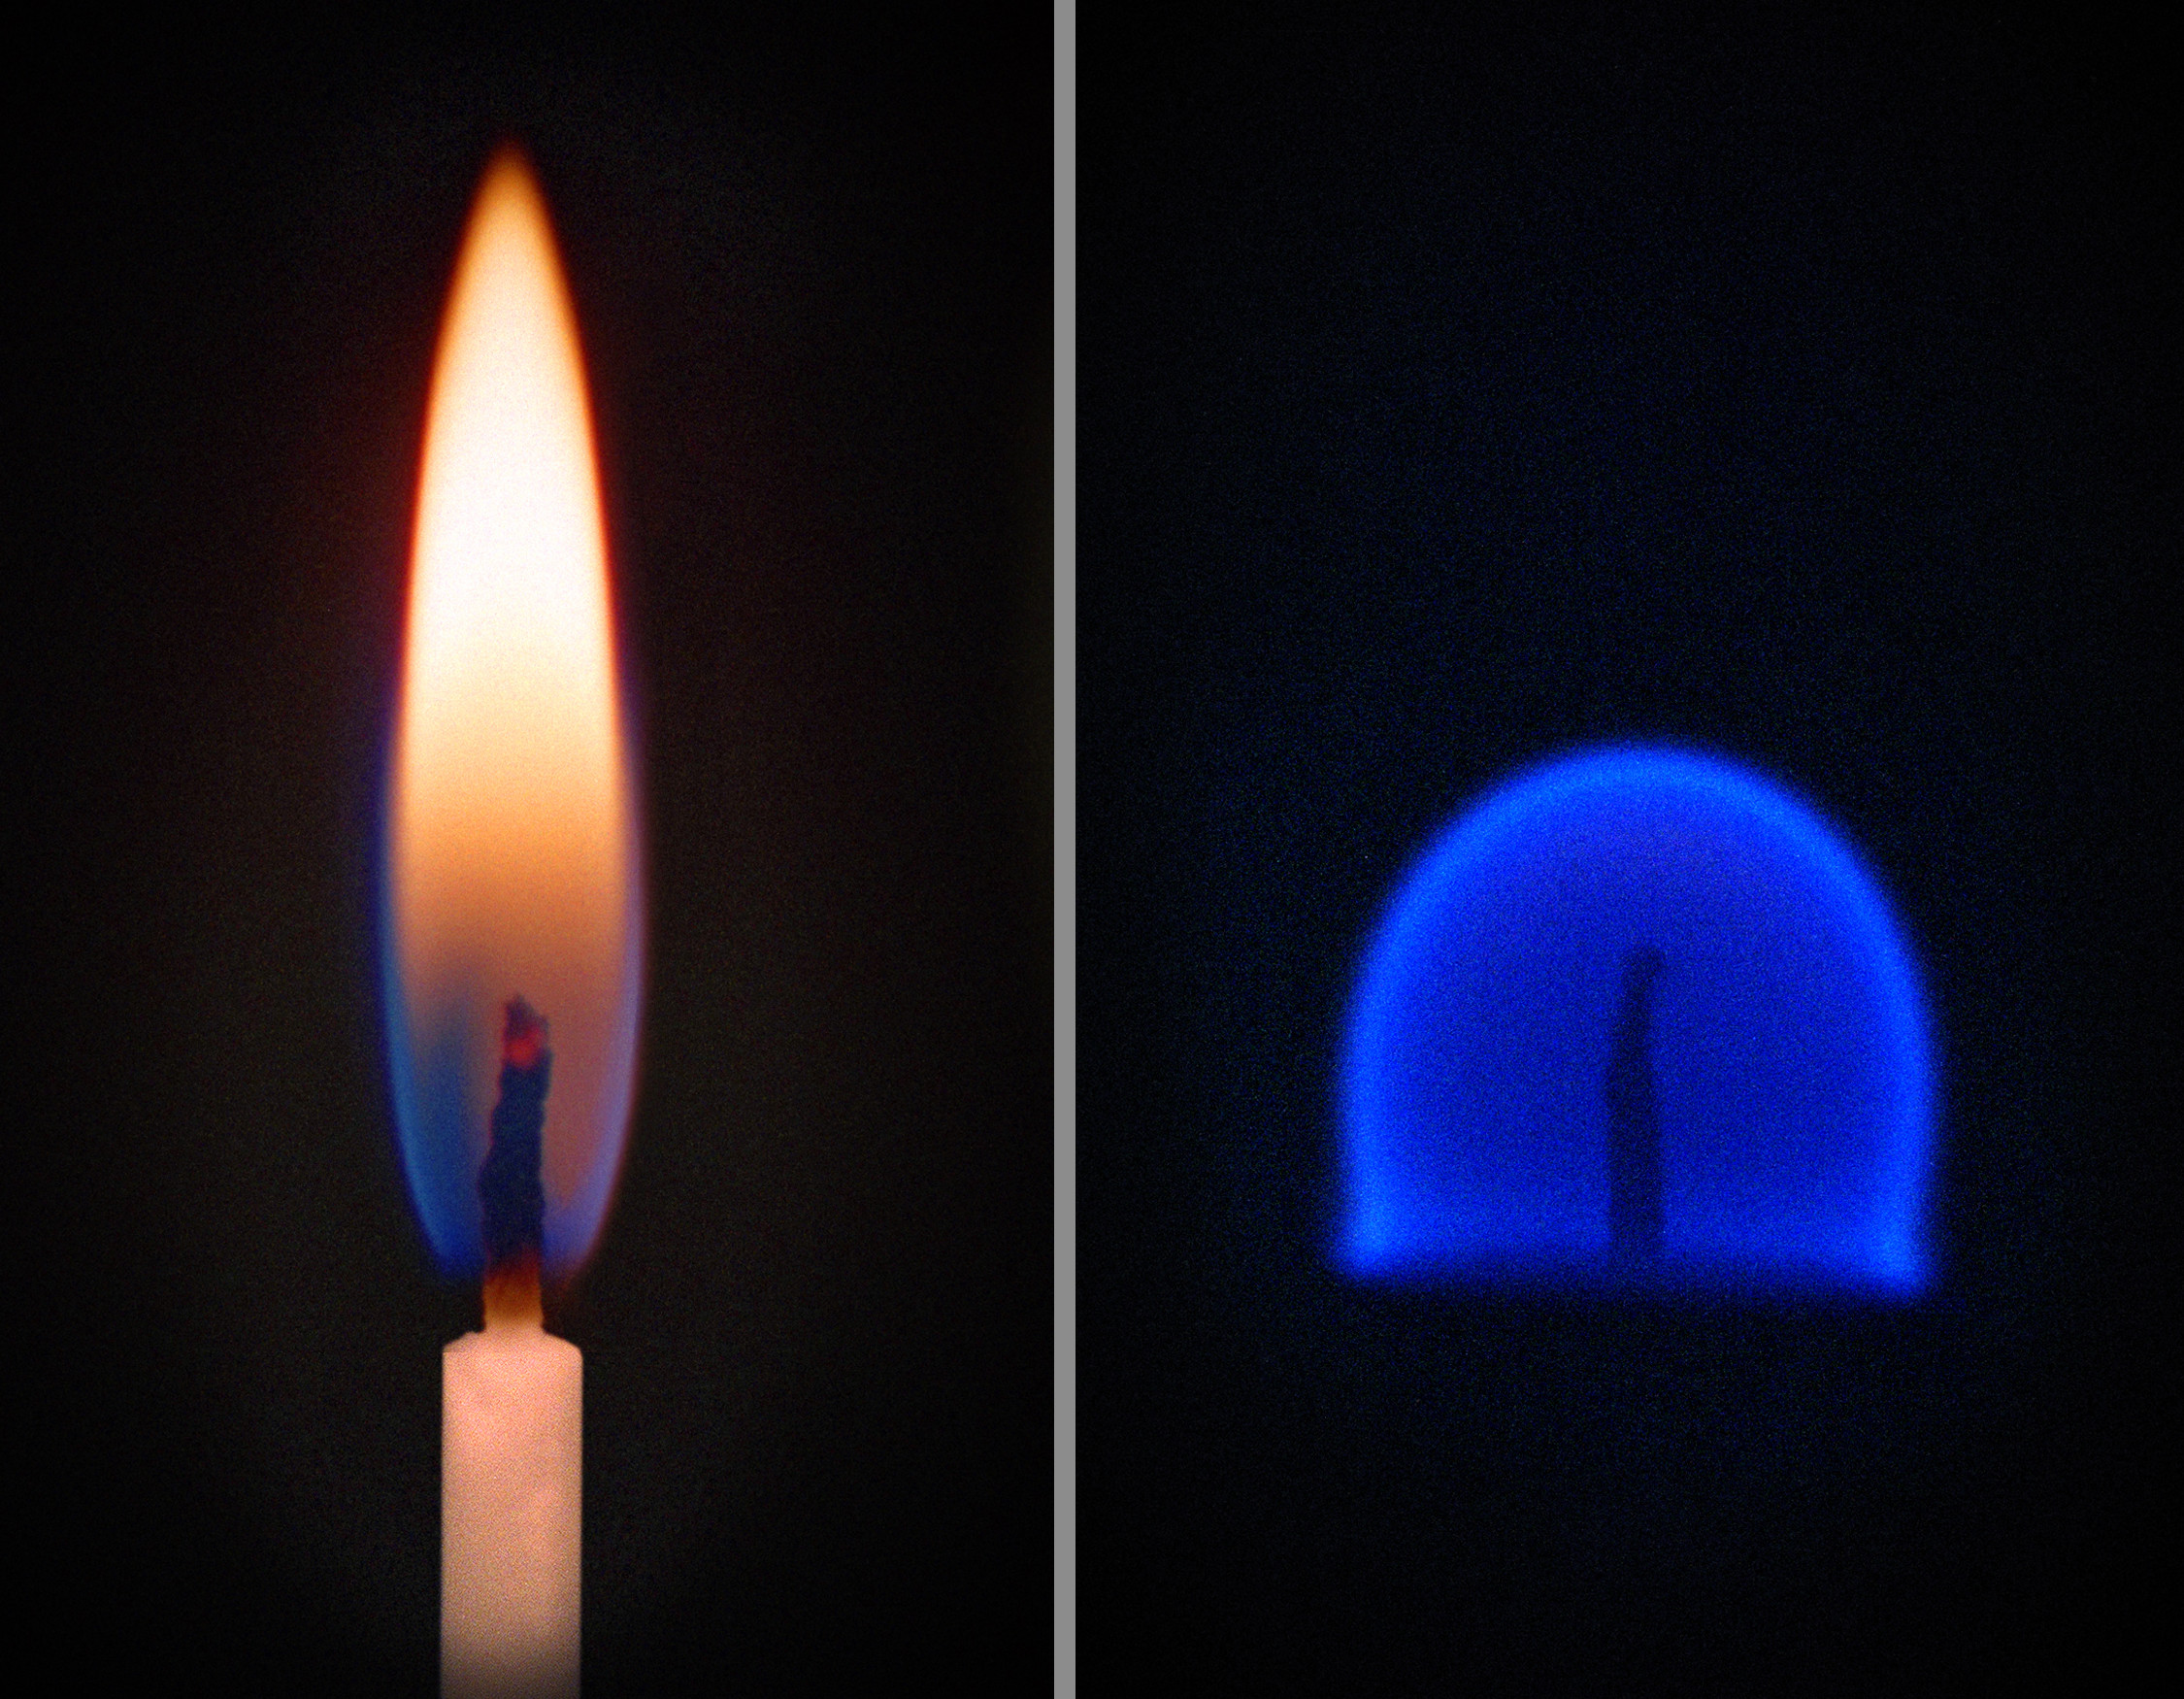 Side by side images of a candle flame (left) and a glowing translucent blue hemisphere of flame (right).